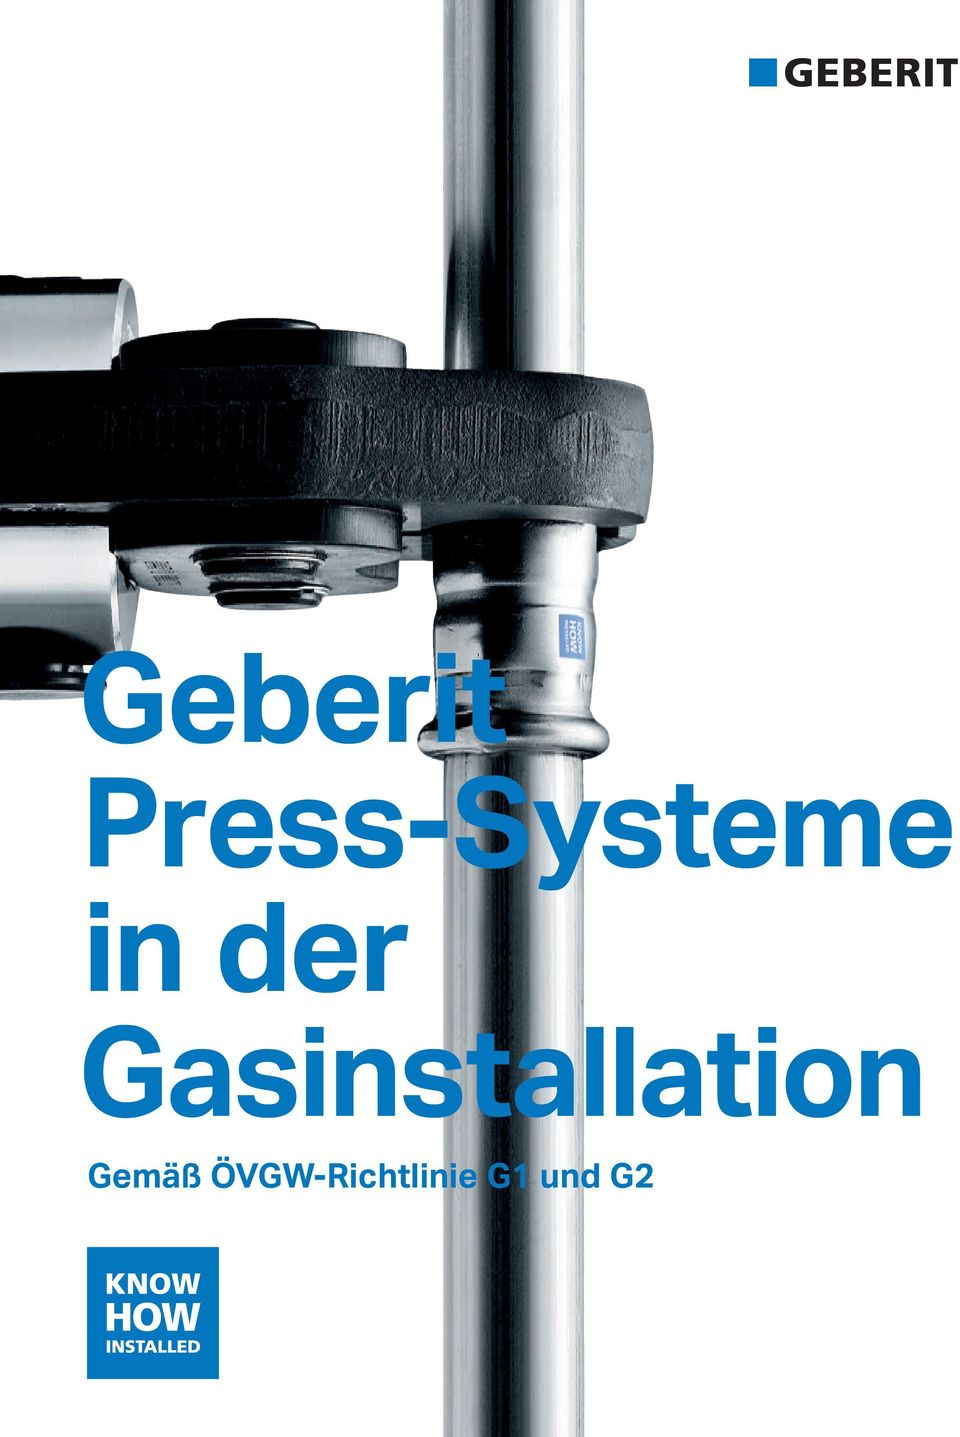 geberit press systeme in der gasinstallation pdf. Black Bedroom Furniture Sets. Home Design Ideas